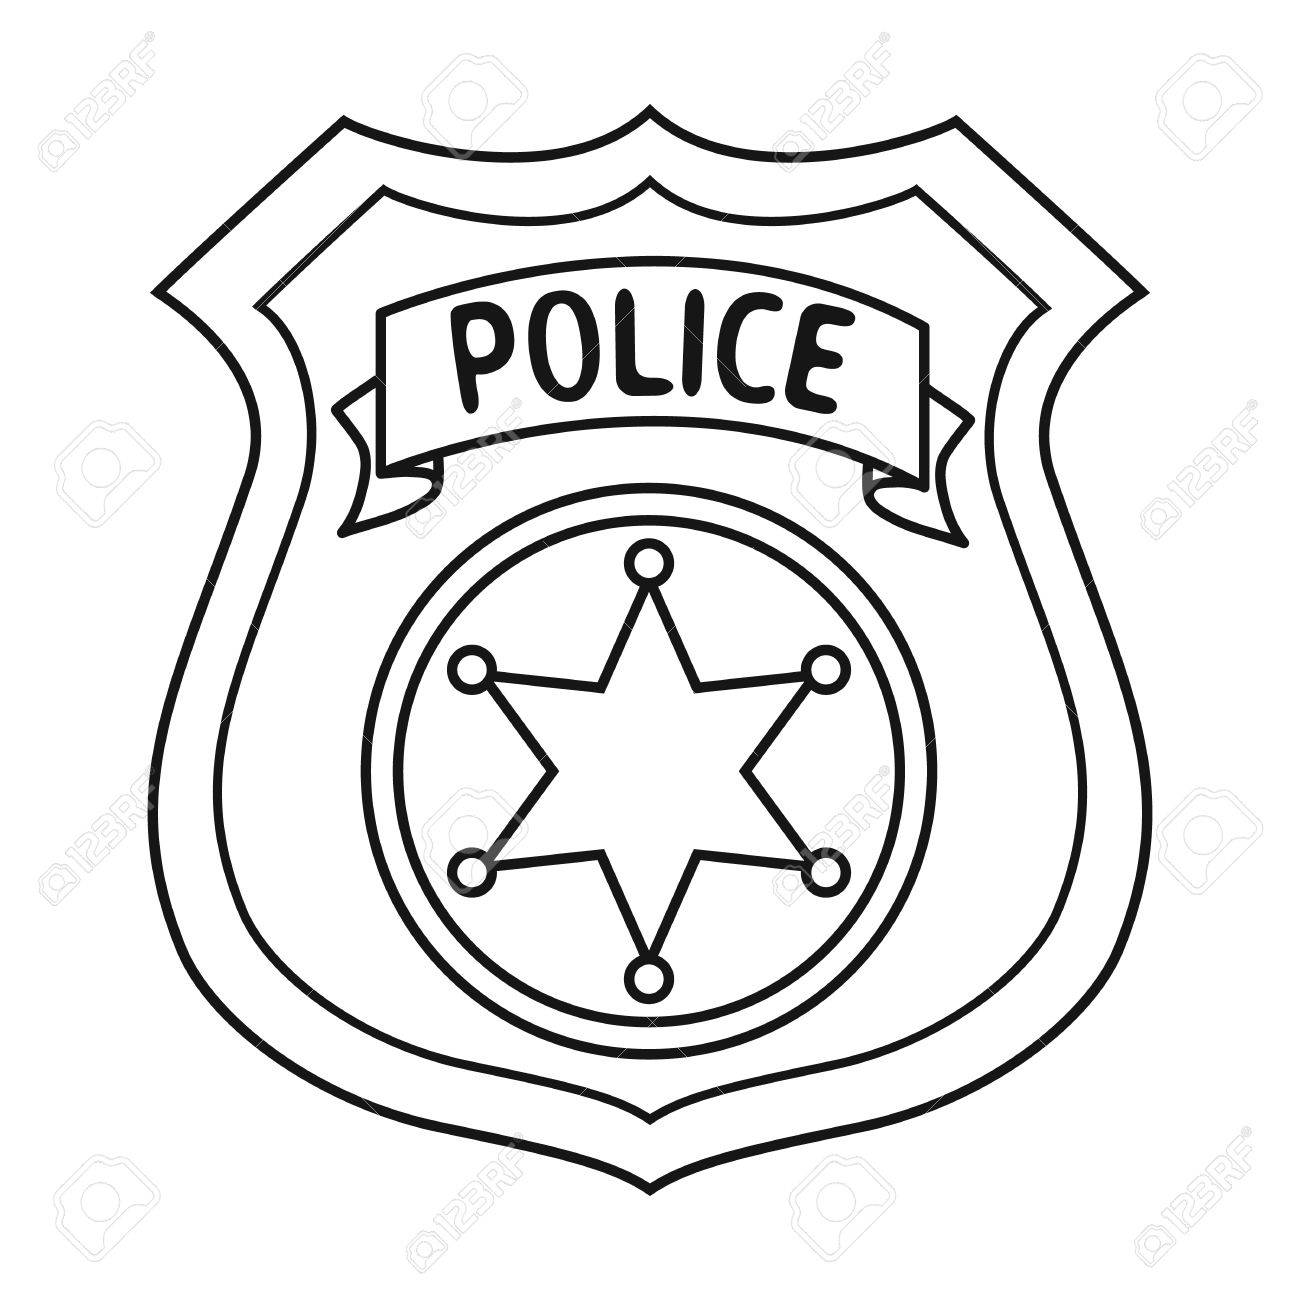 Police badge clipart black and white clip transparent library Sheriff Badge Clipart | Free download best Sheriff Badge Clipart on ... clip transparent library